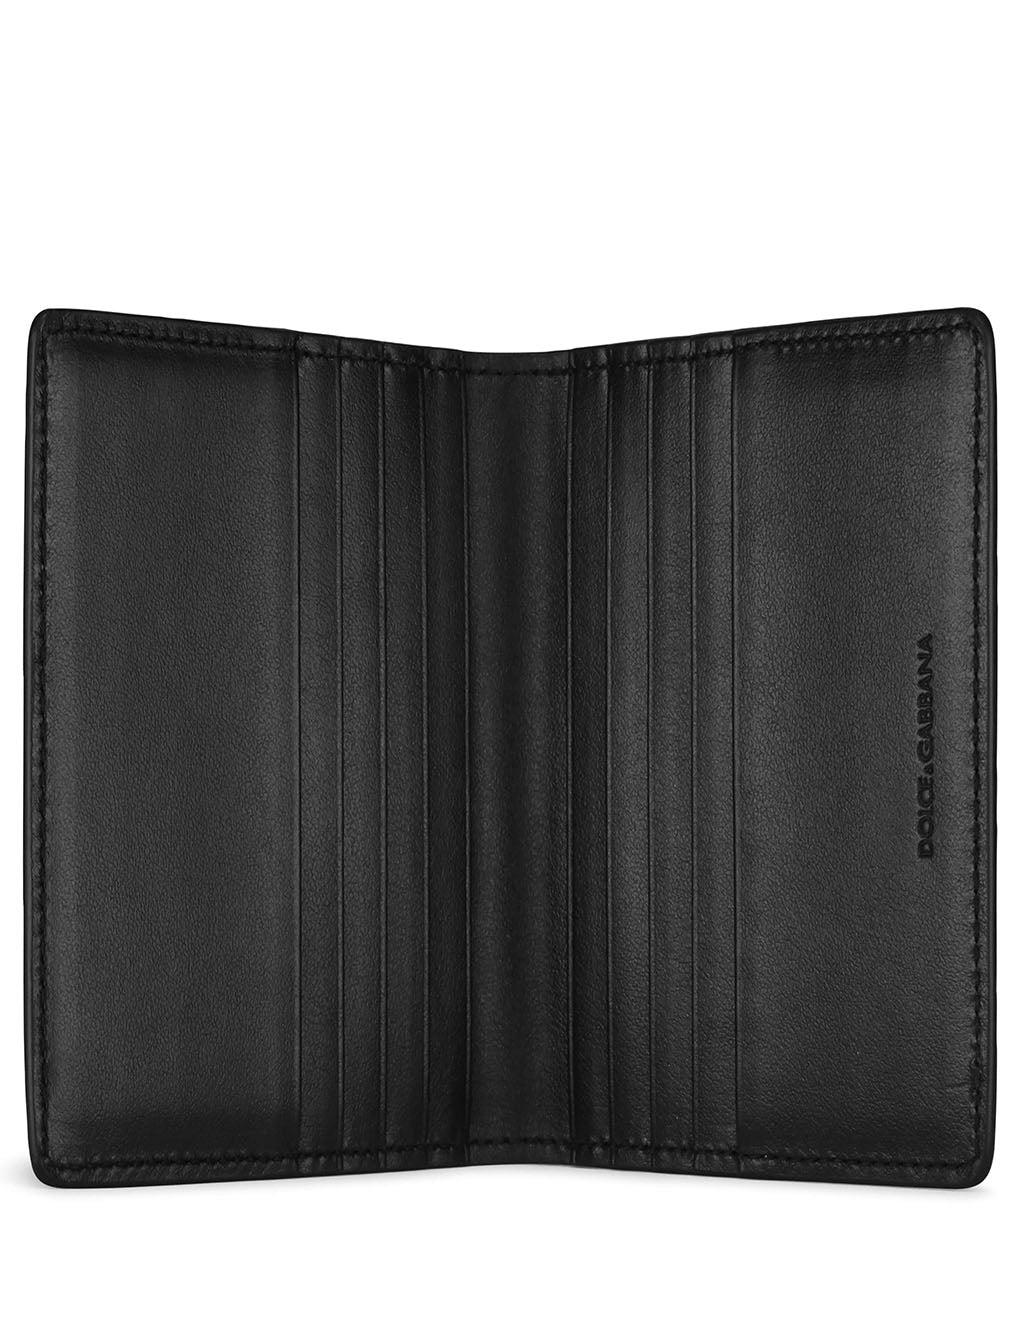 Dolce & Gabbana Men's Giulio Fashion Black Folding Cardholder BP2458AZ10680999